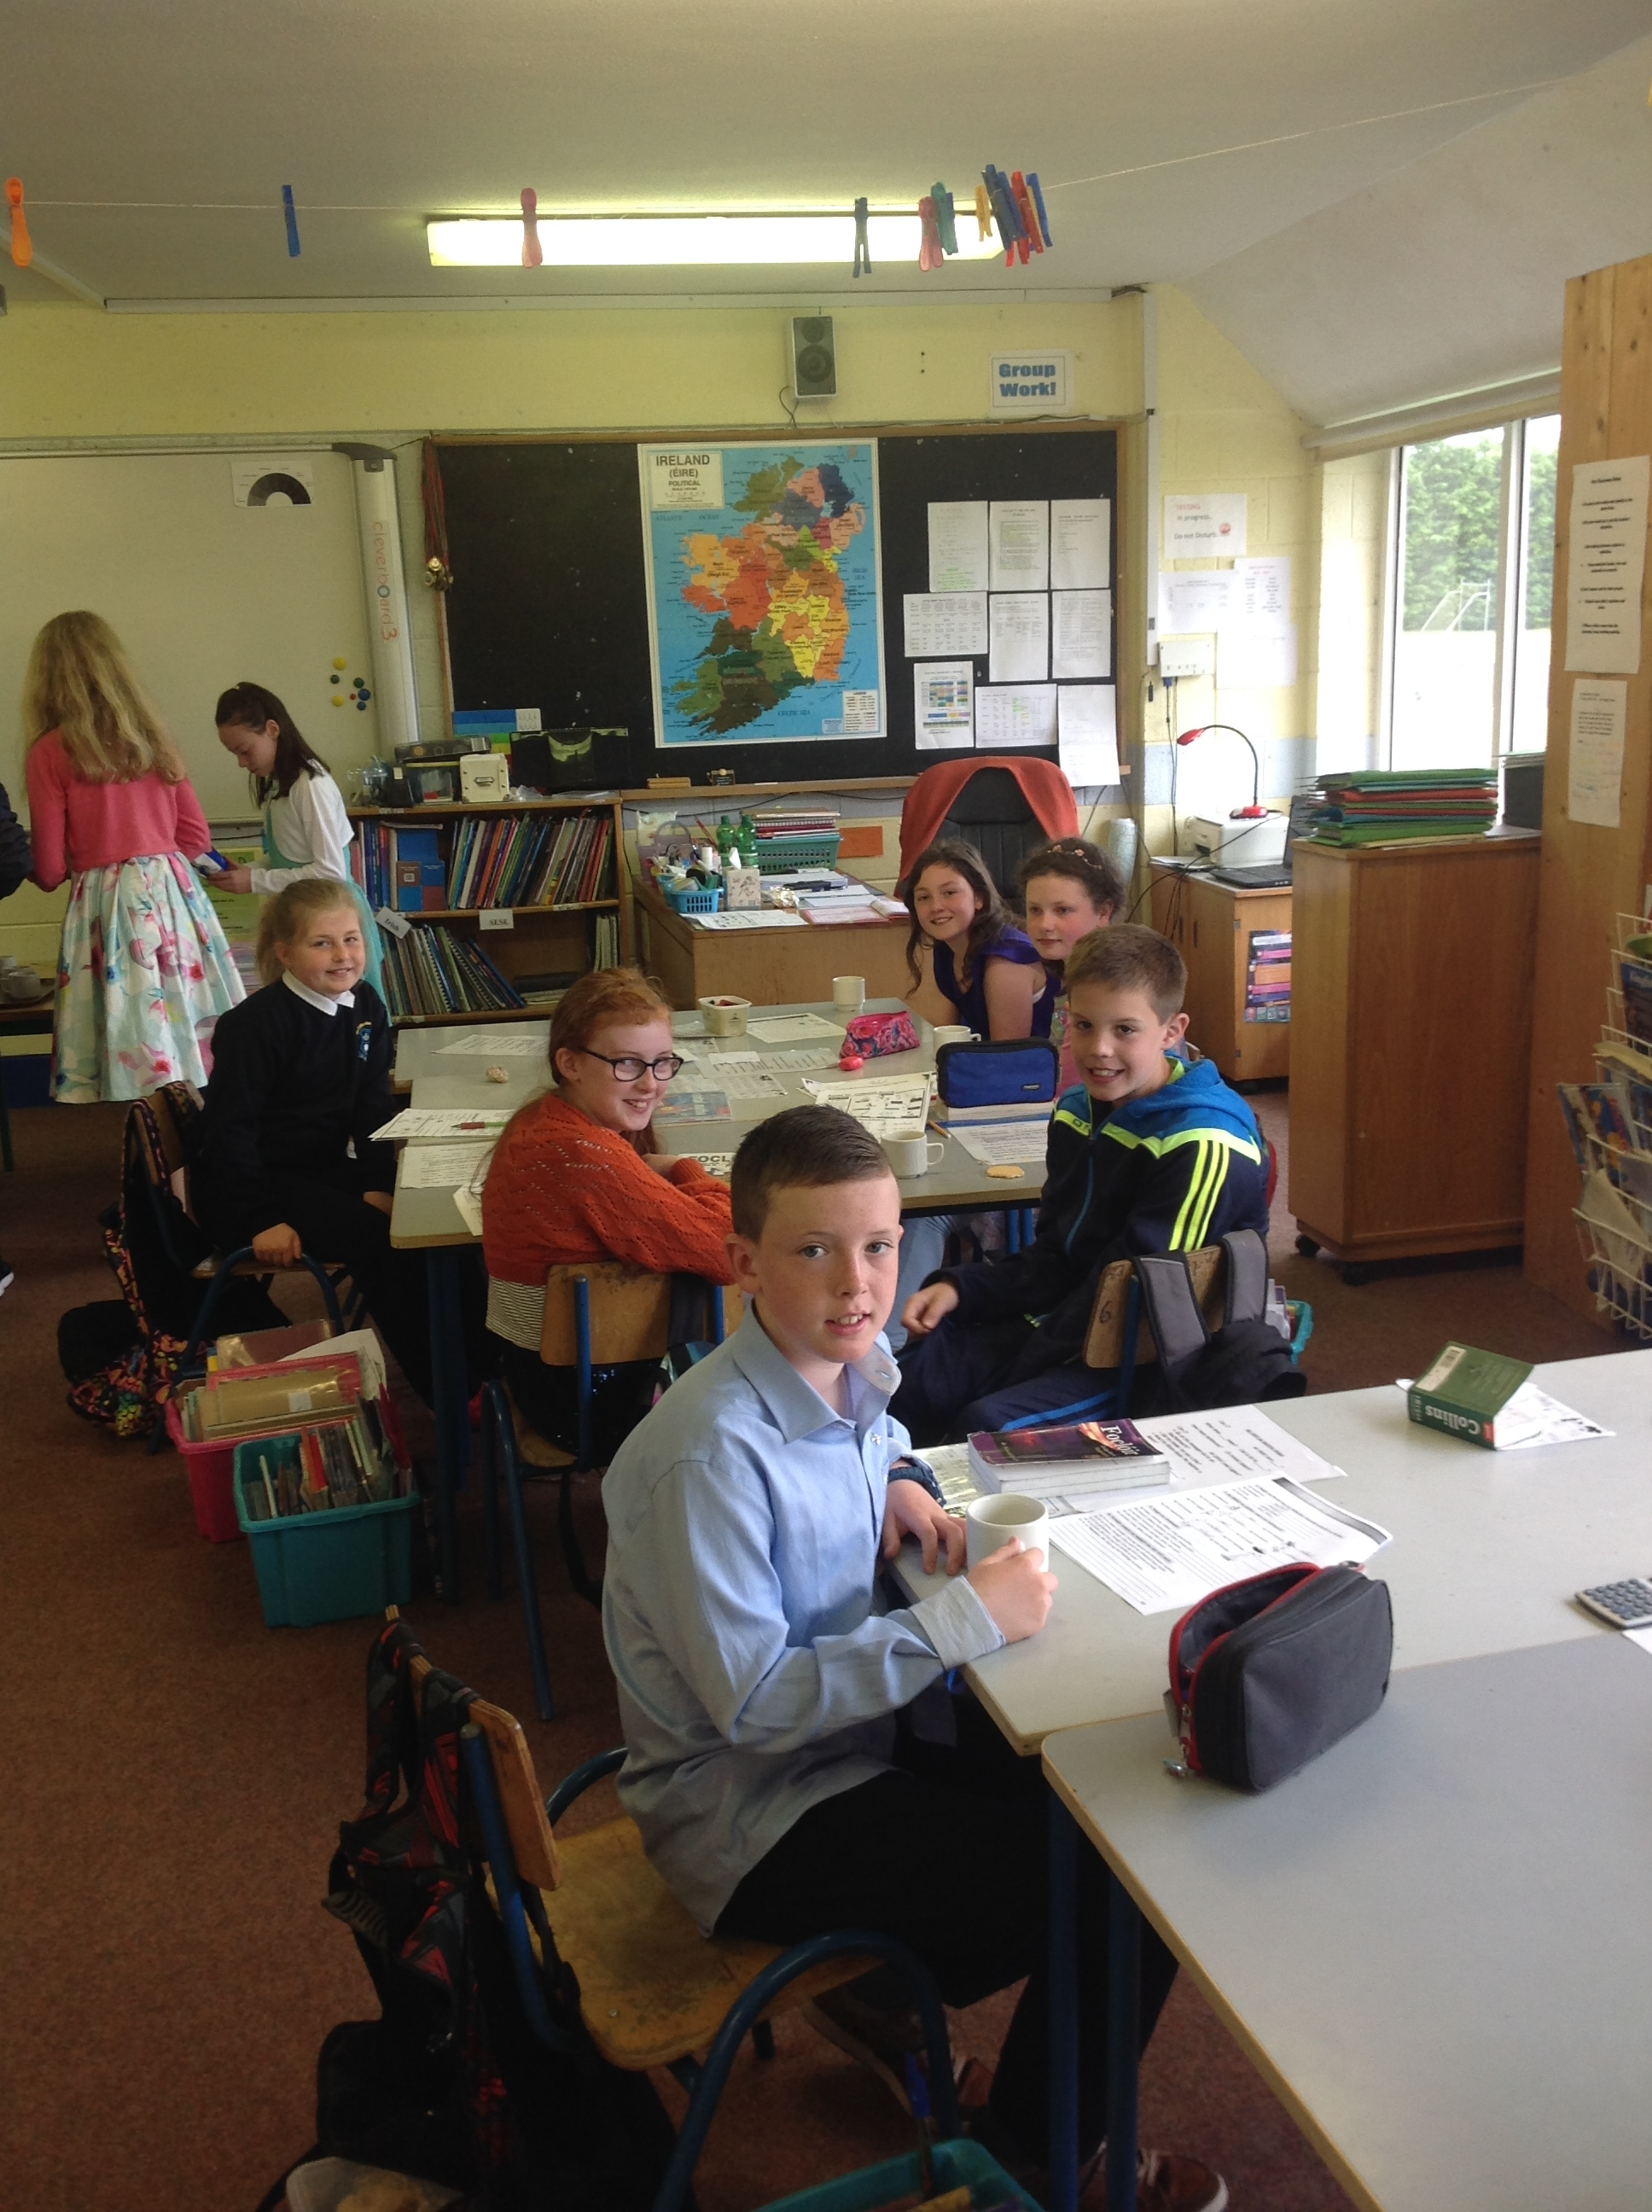 th Class-chatting about the day on Monday at school